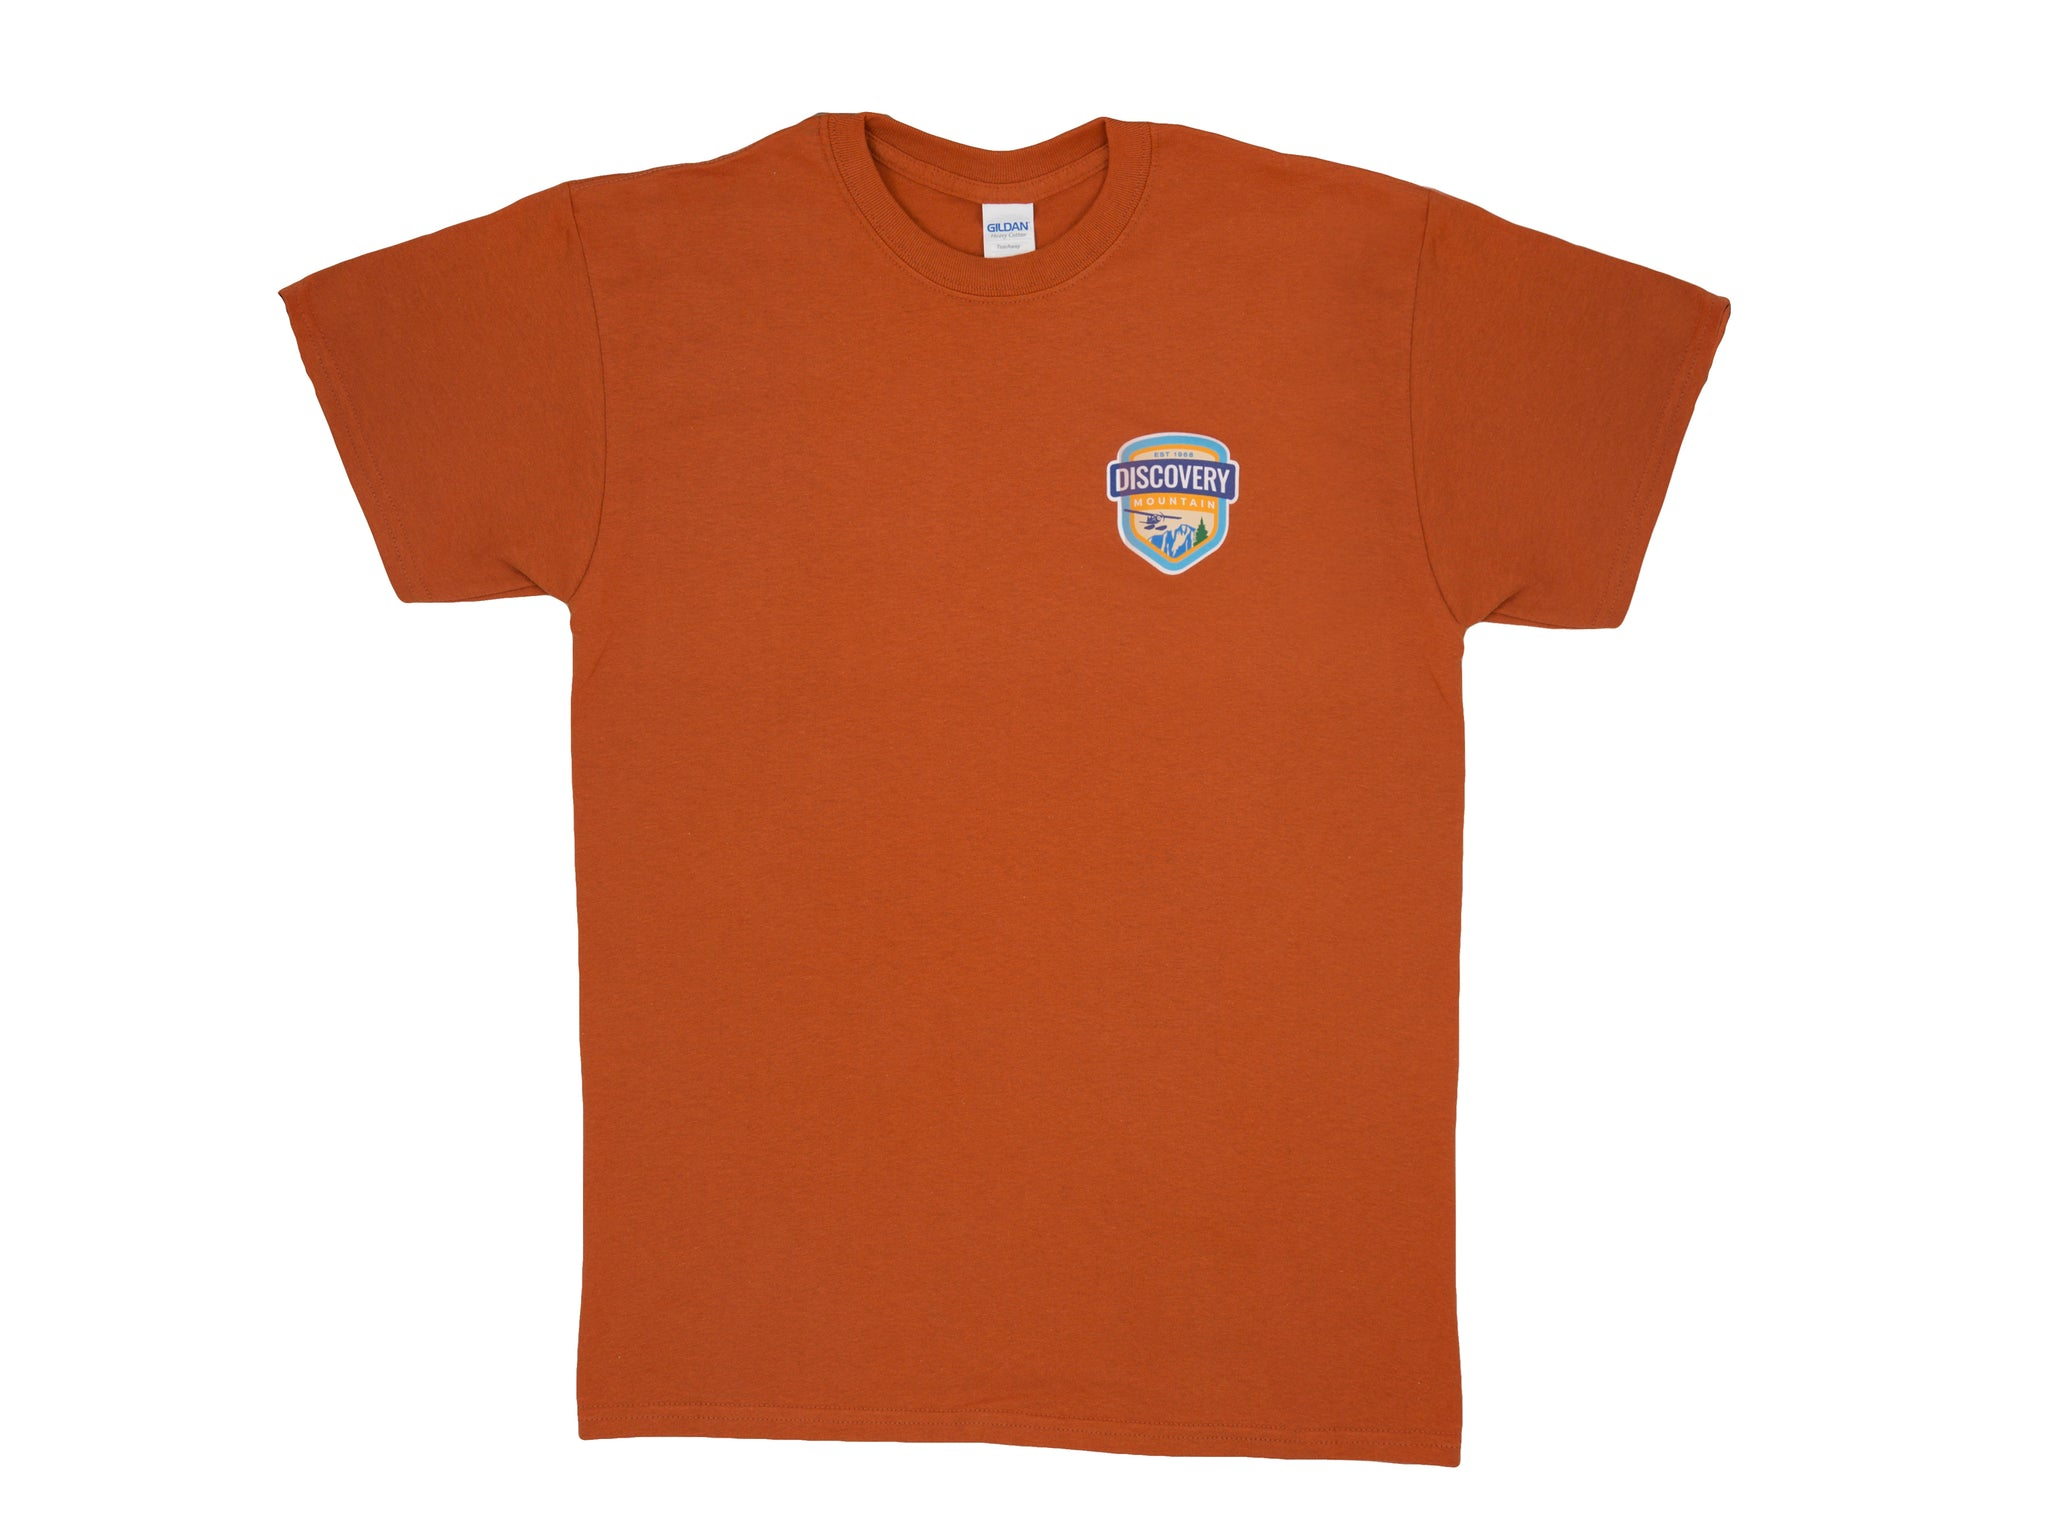 Discovery Mountain Orange T-Shirt